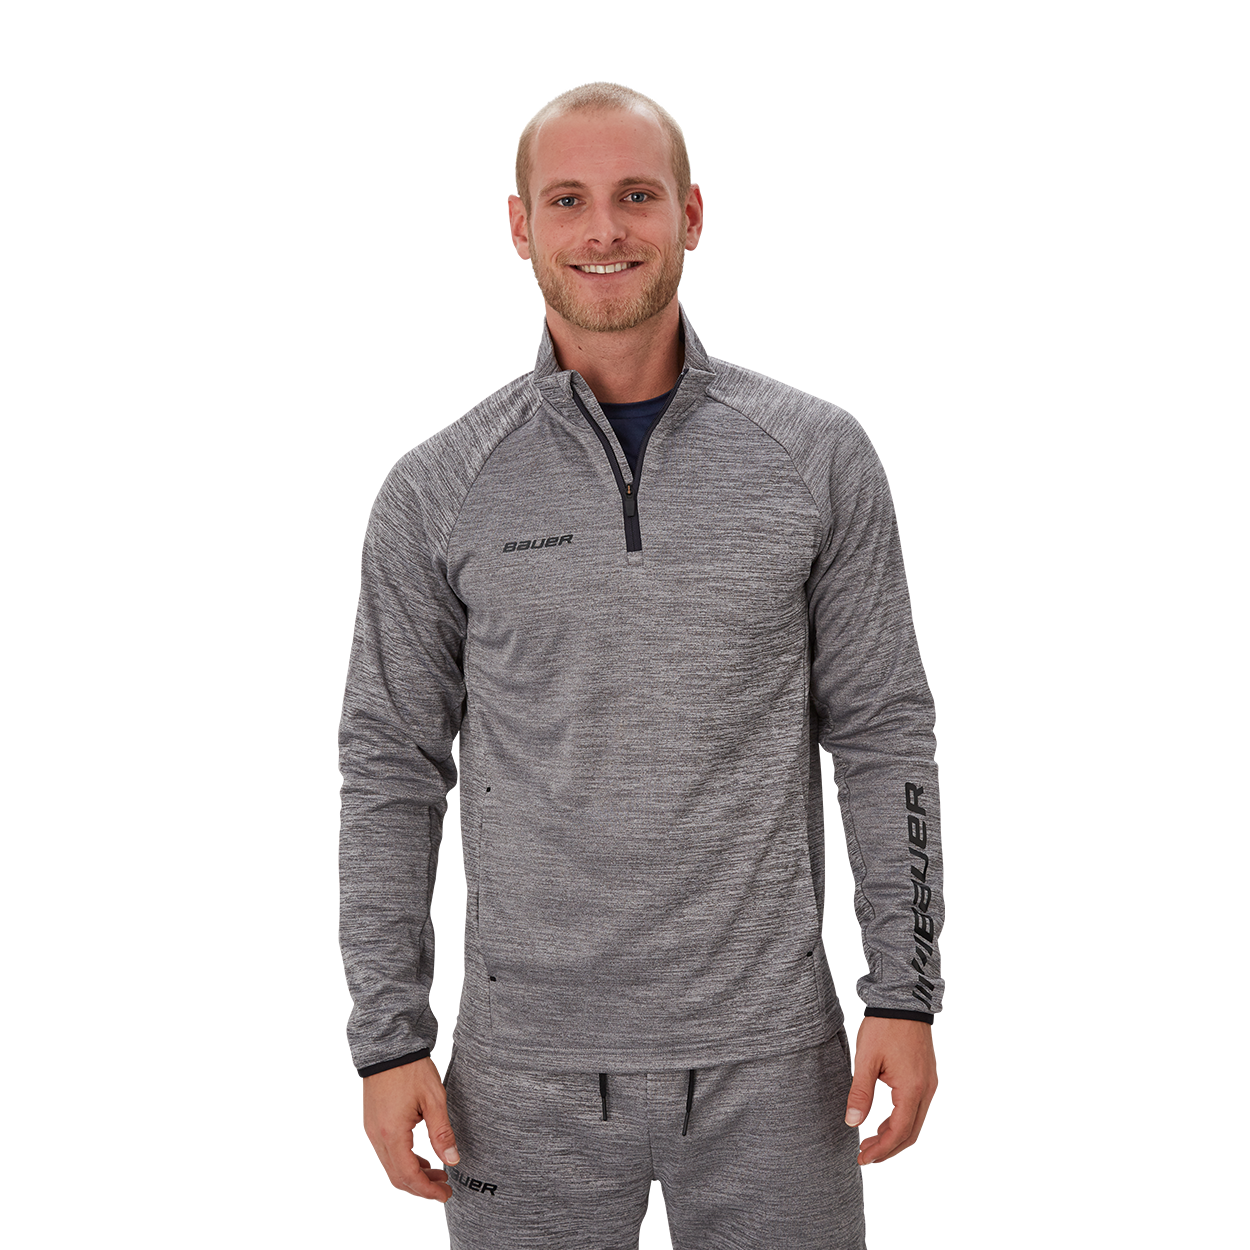 Bauer Vapor Fleece Quarter Zip,Grau,Medium